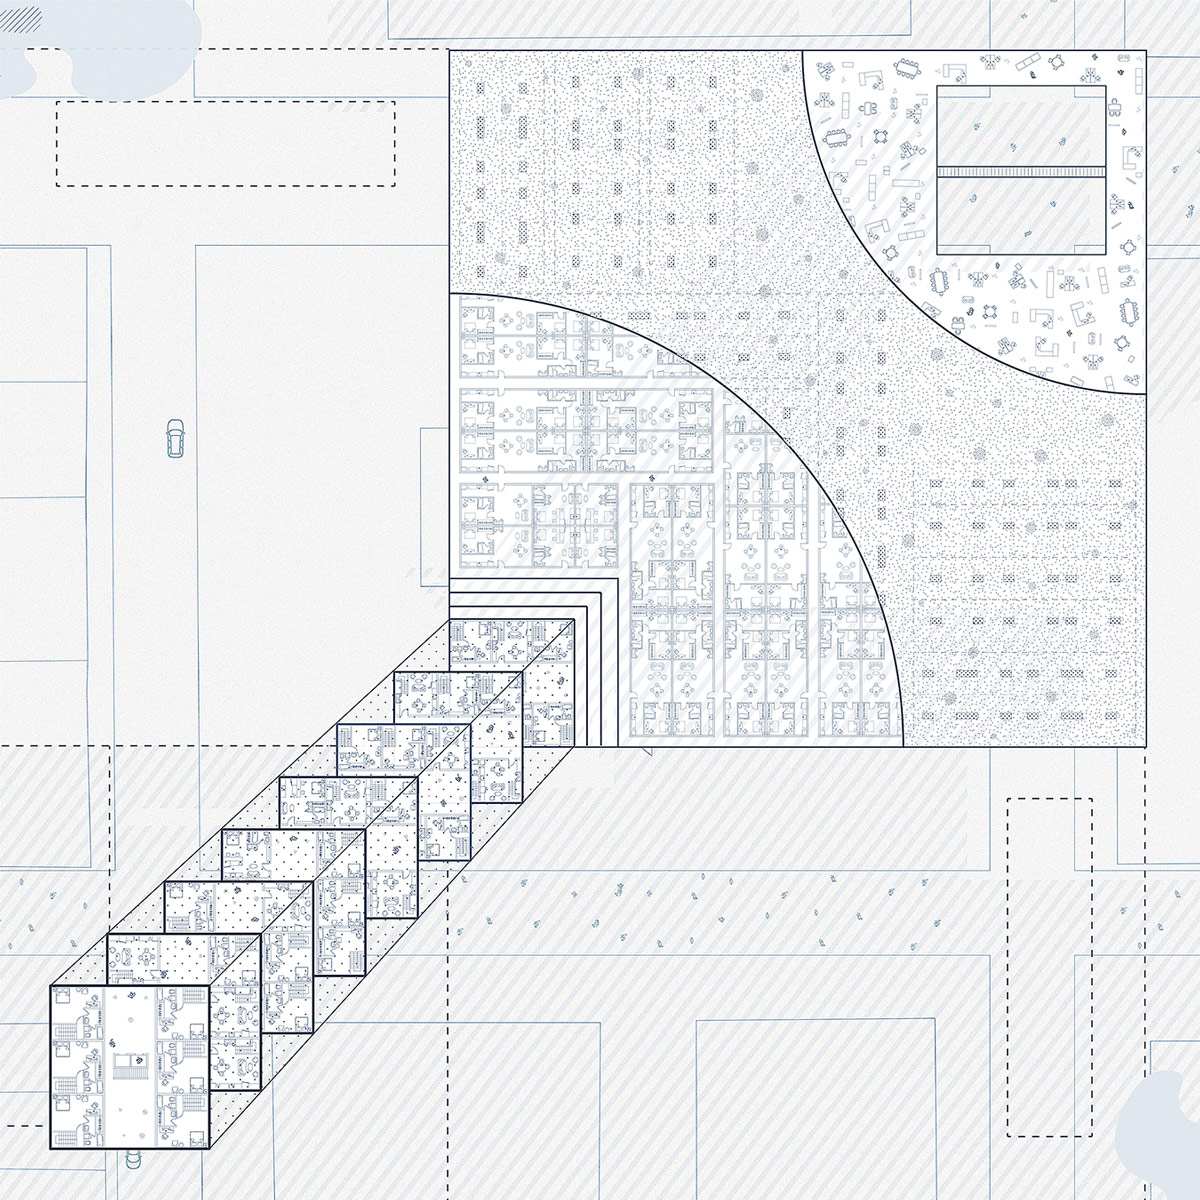 Plan drawing illustrating multiple layers of a housing typology and shade canopy above Phoenix by student Yuchen Zhao